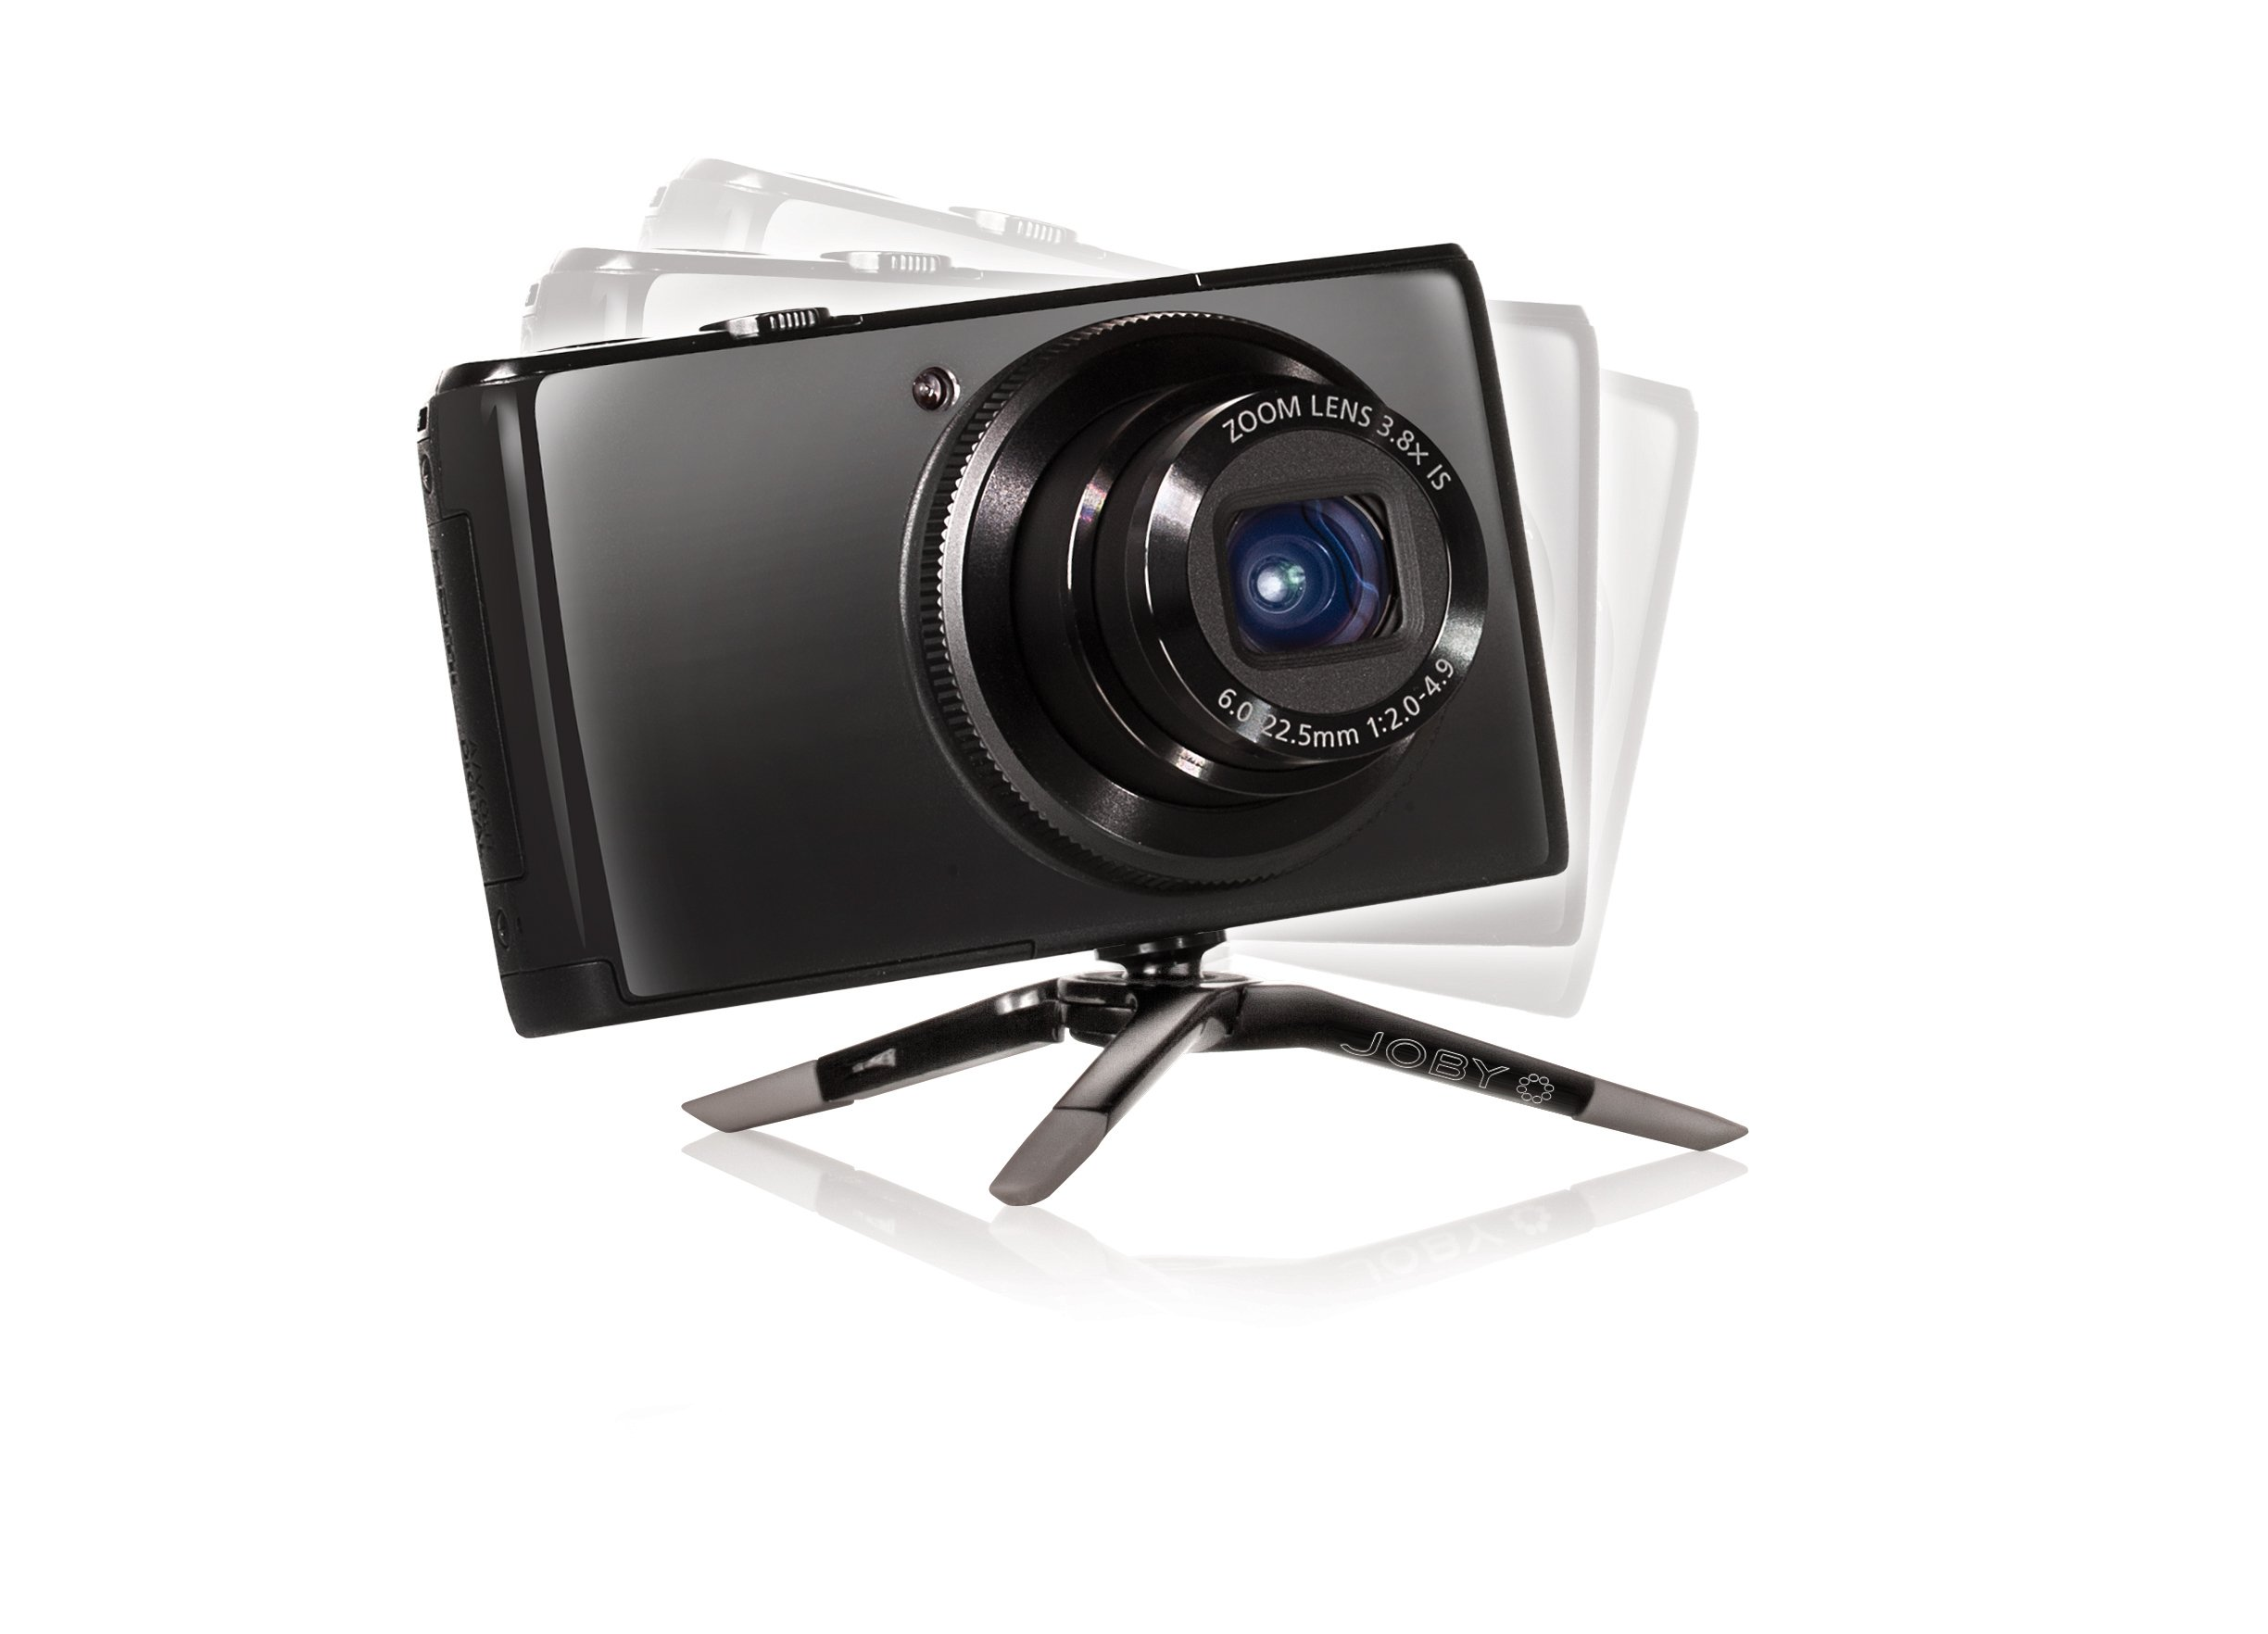 JOBY Micro Tripod for Point & Shoot Cameras - Ultra Portable Tripod That Fits In Your Pocket by Joby (Image #5)